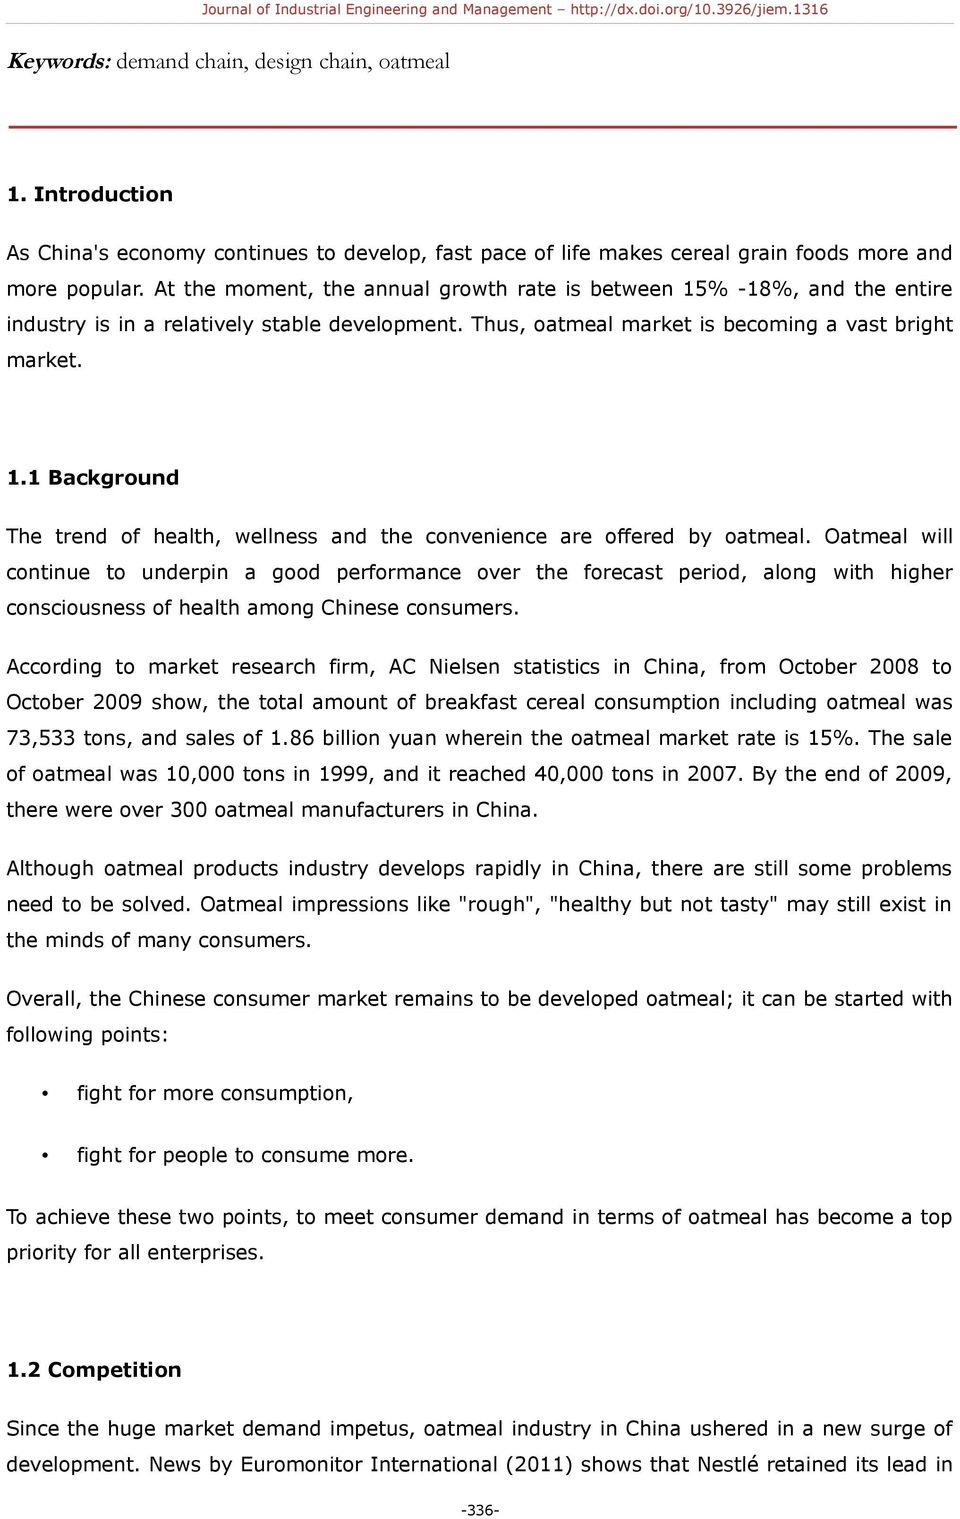 A Demand Chain Design for Chinese Oatmeal Companies